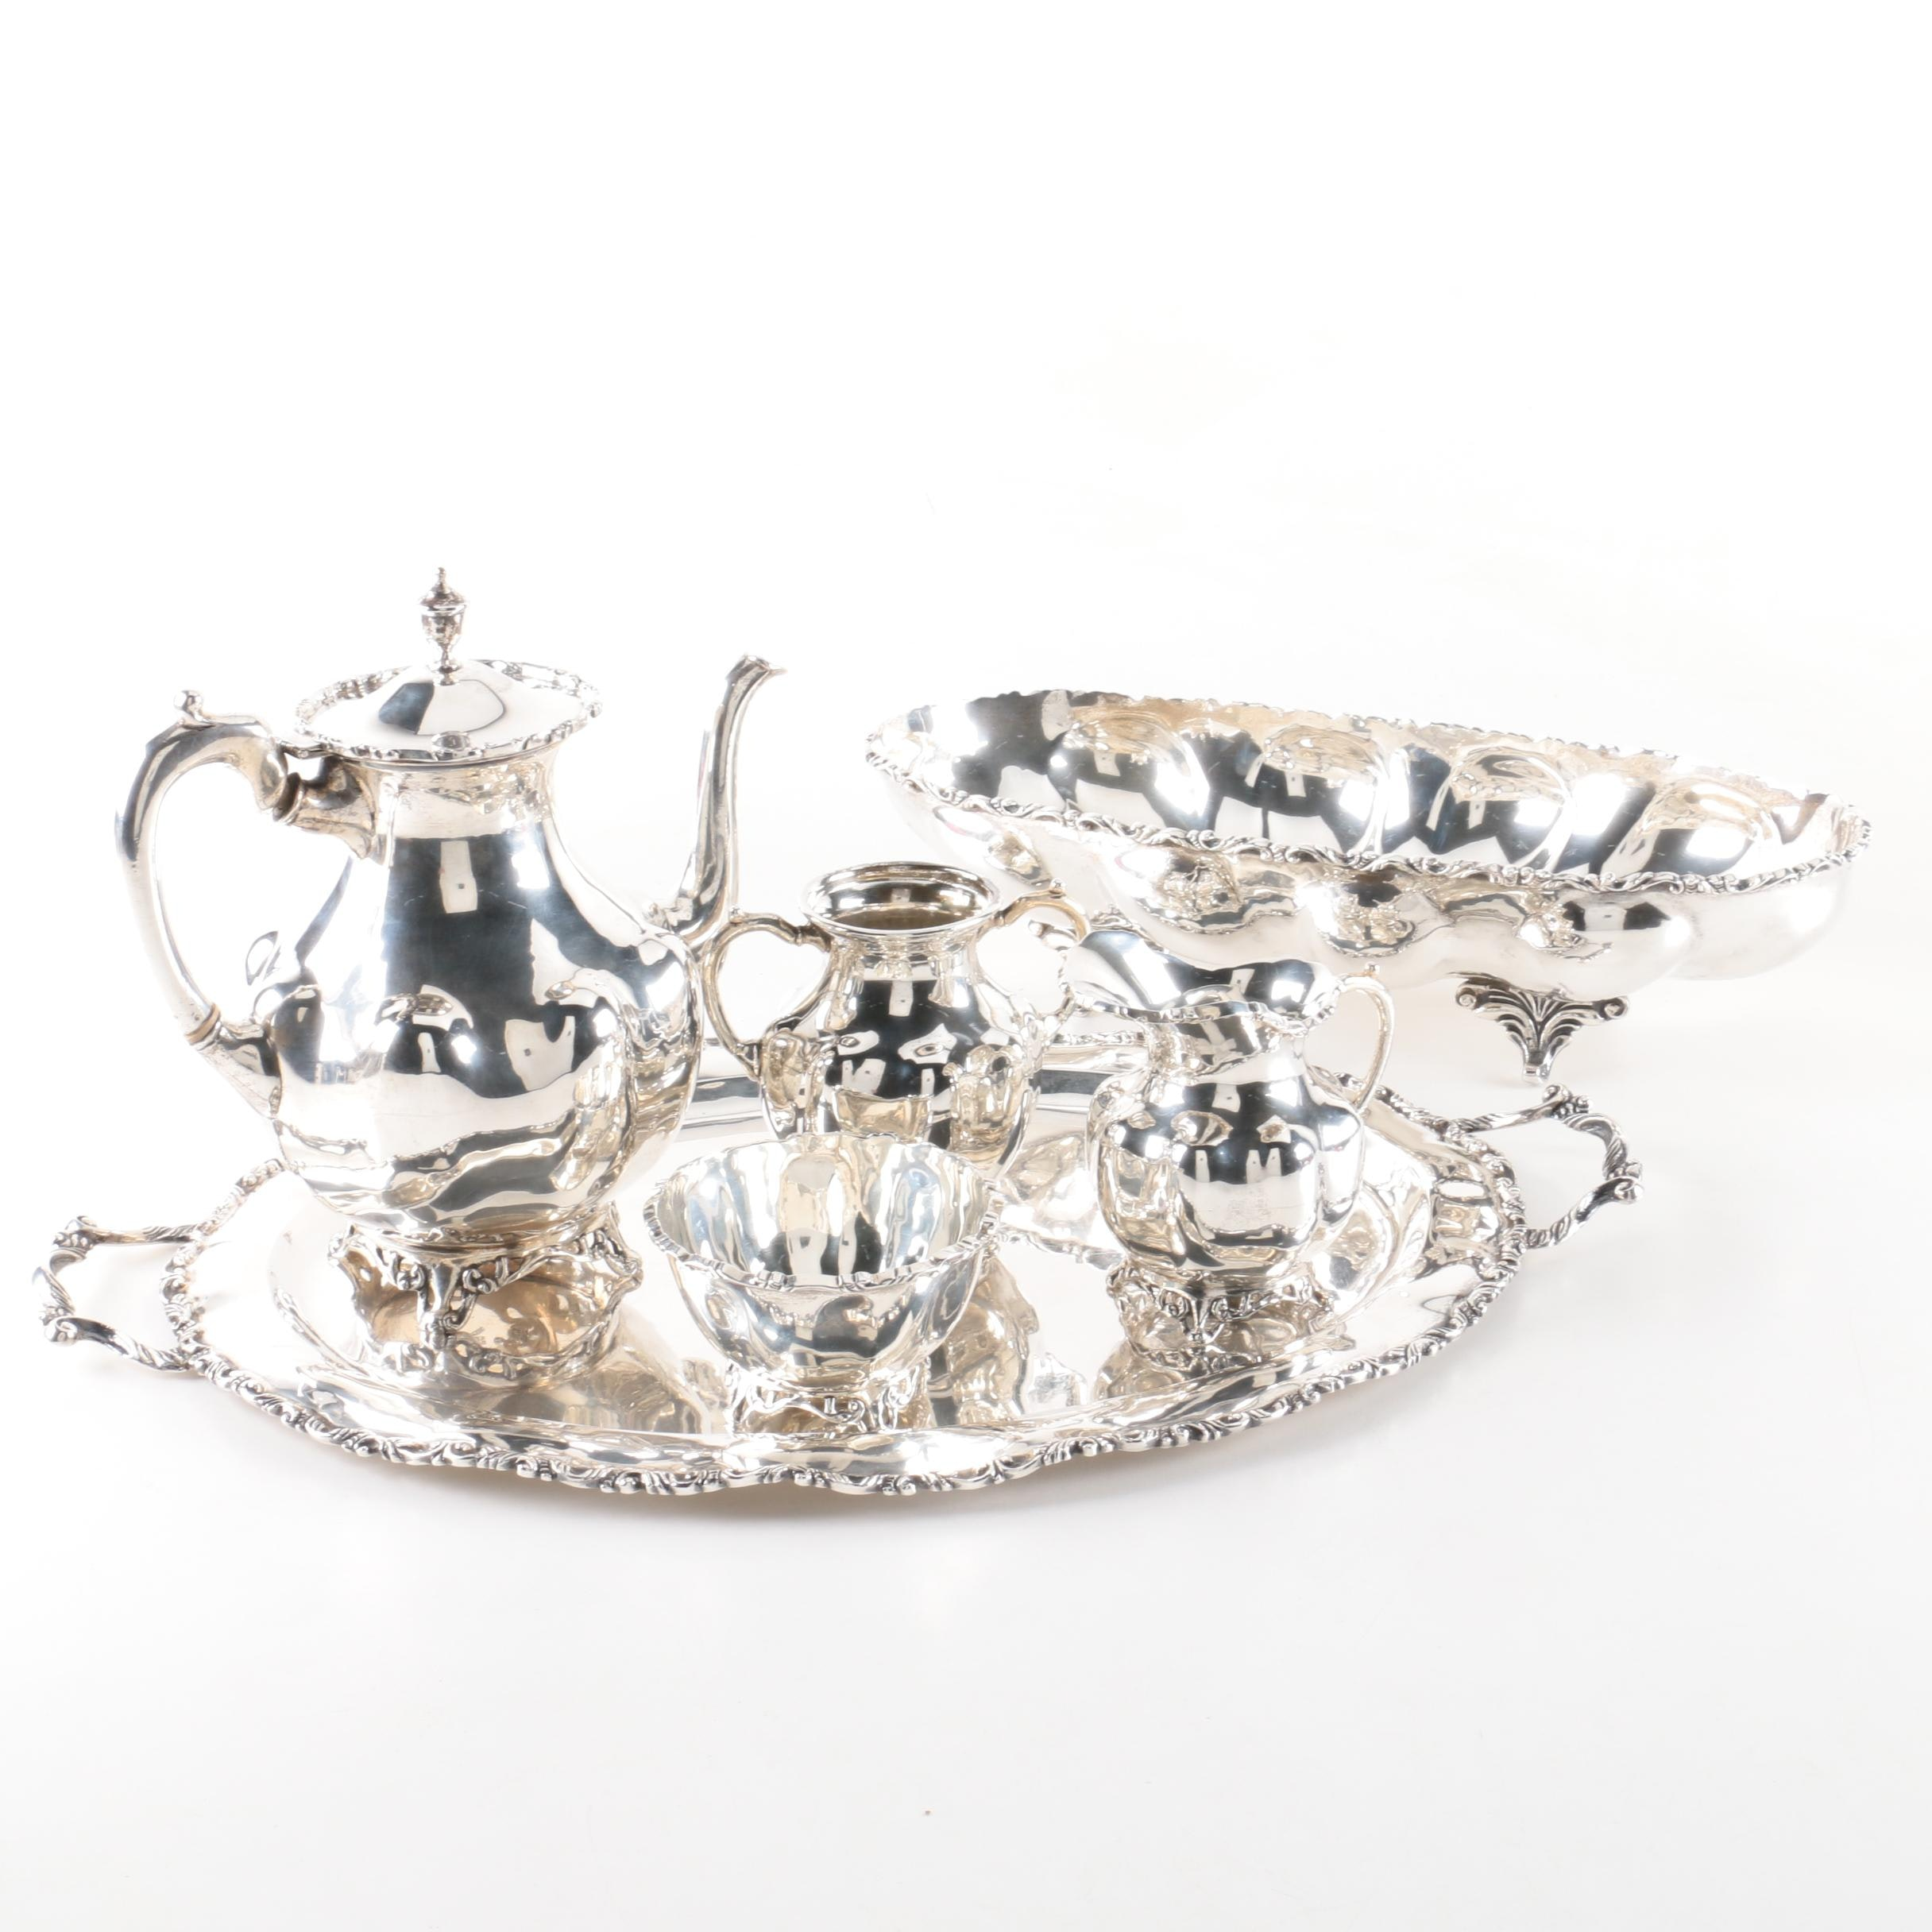 A. Torres Vega Mexican Sterling Silver Tea Set with Tray and Footed Dish